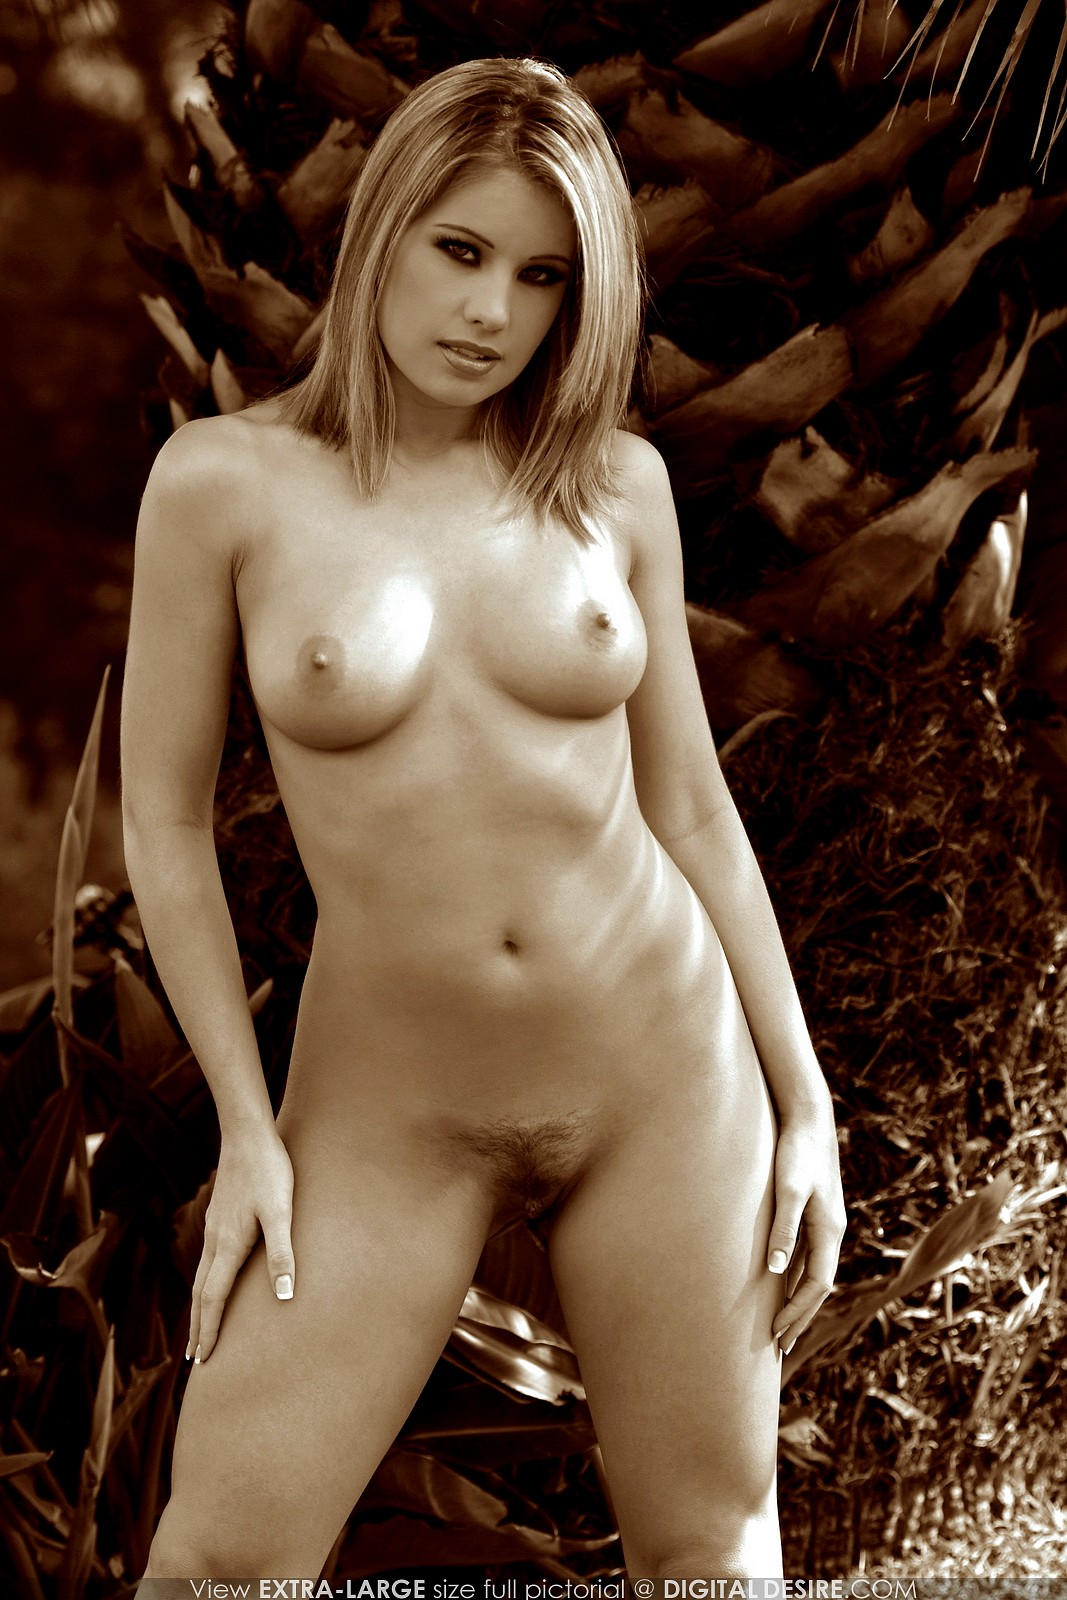 ashley brookes art nudes outdoors / sexy models